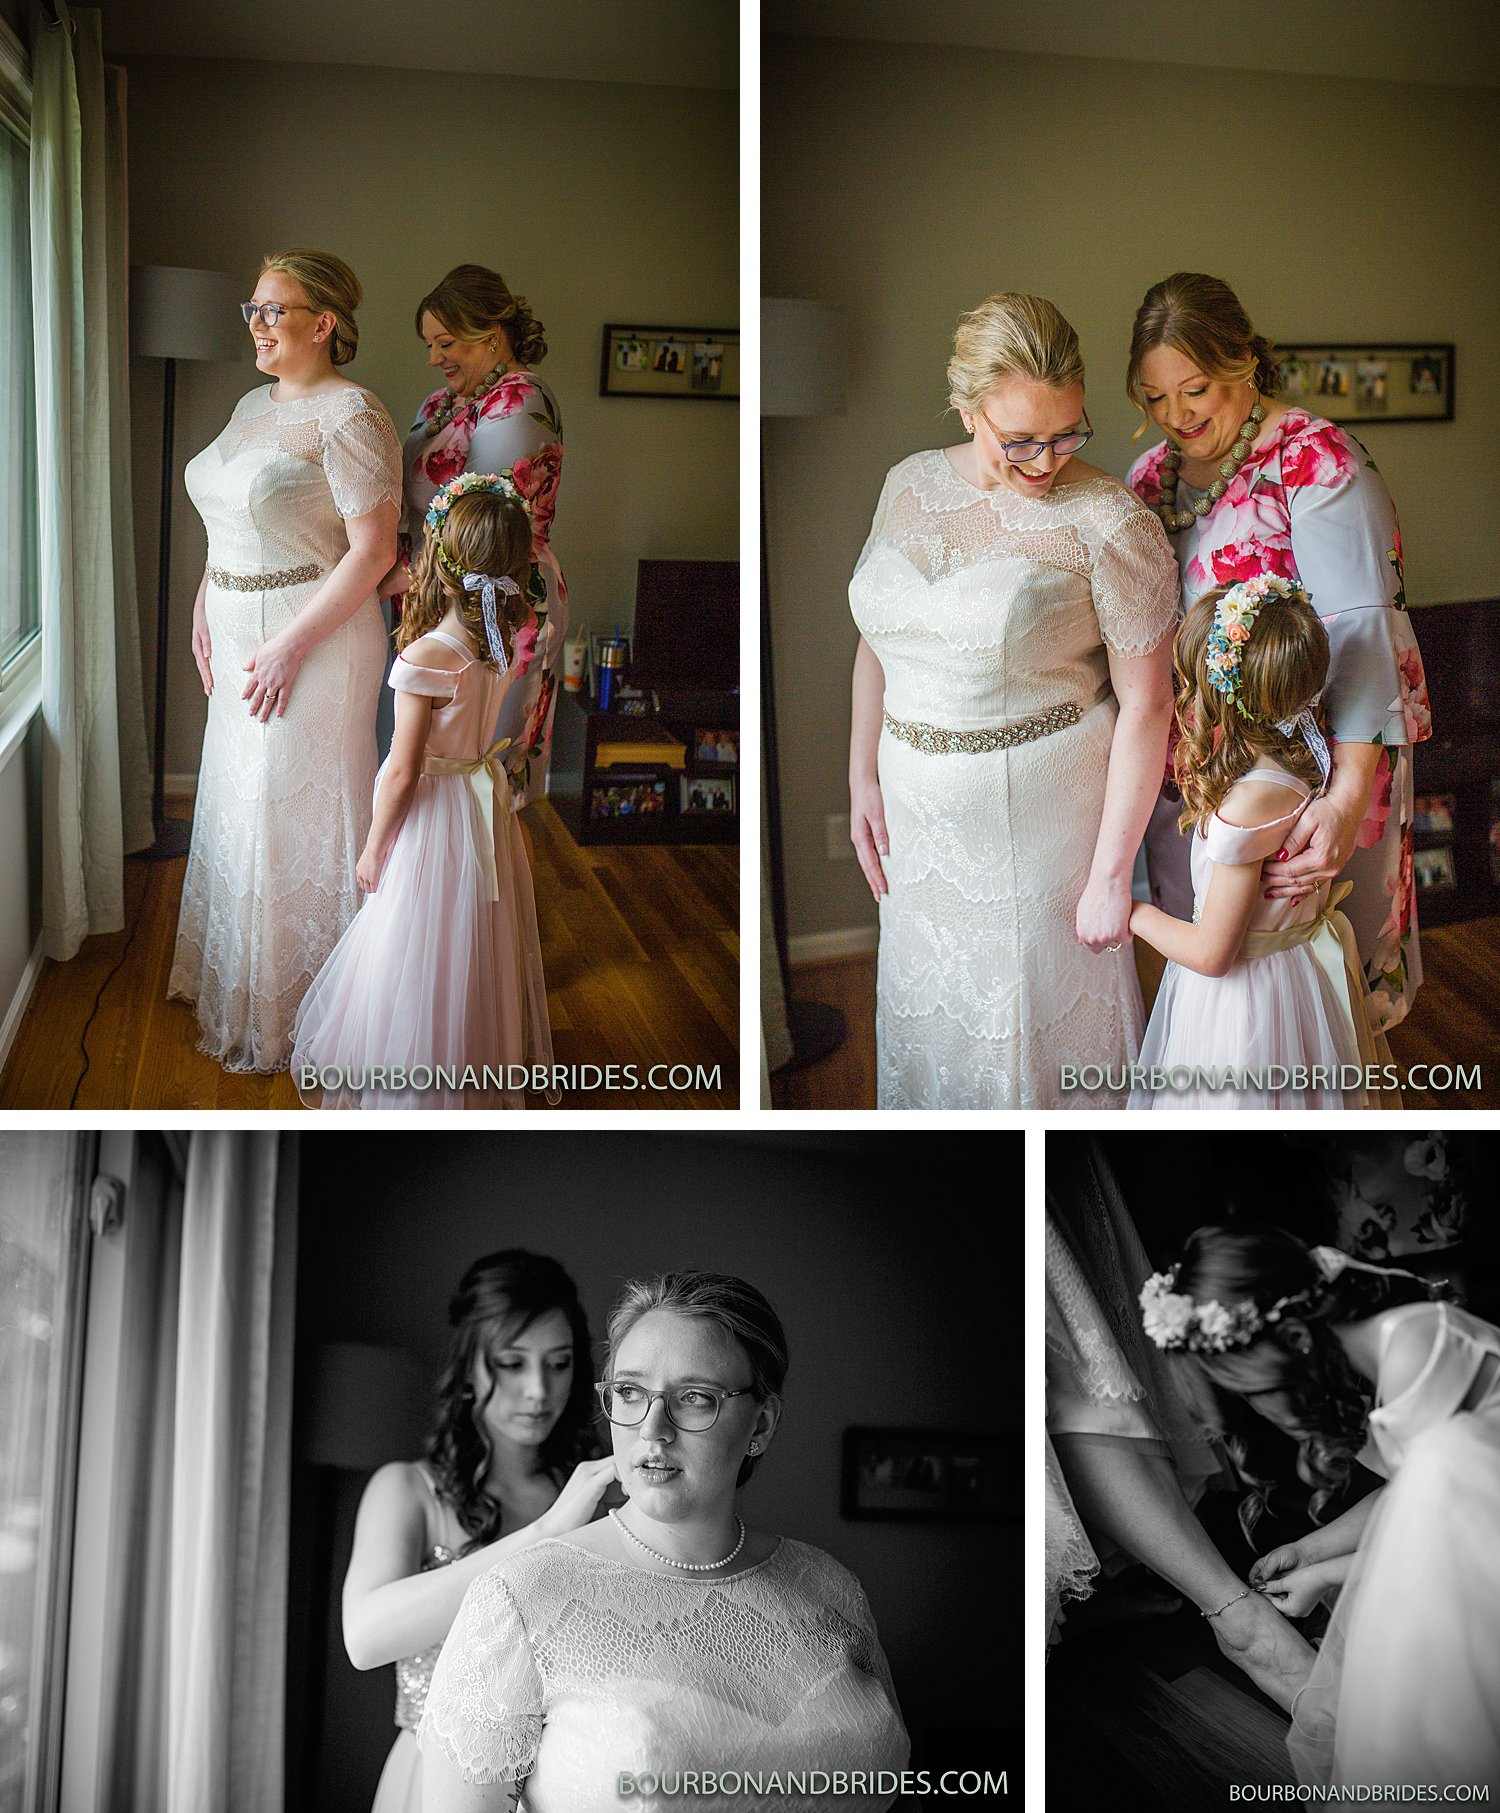 Lexington-wedding-kentucky-Photographer_0005.jpg